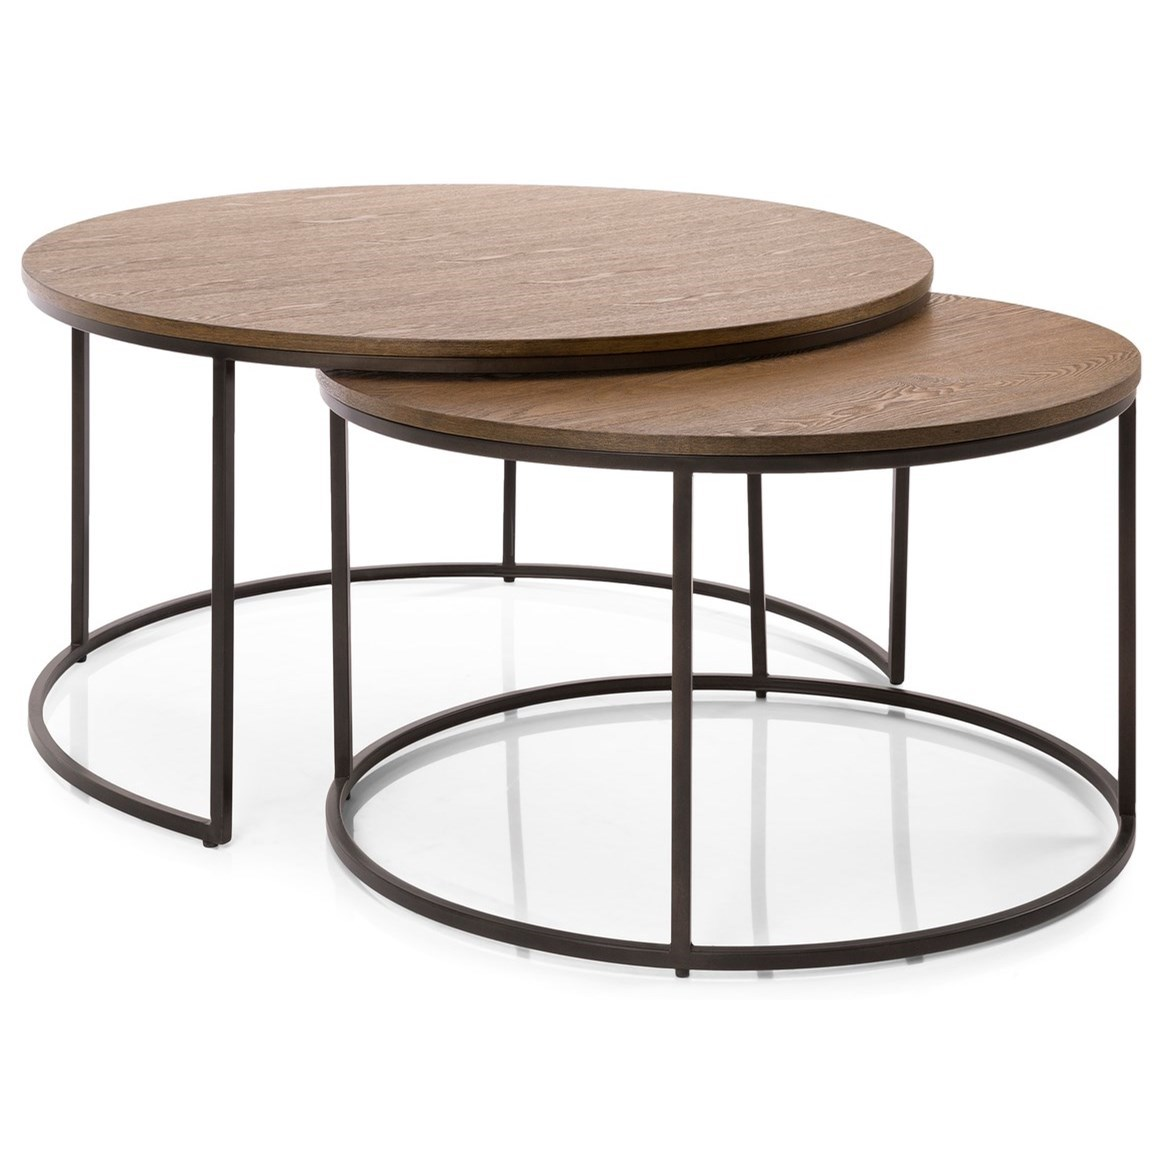 Berlin Nesting Coffee Tables by Decor-Rest at Stoney Creek Furniture